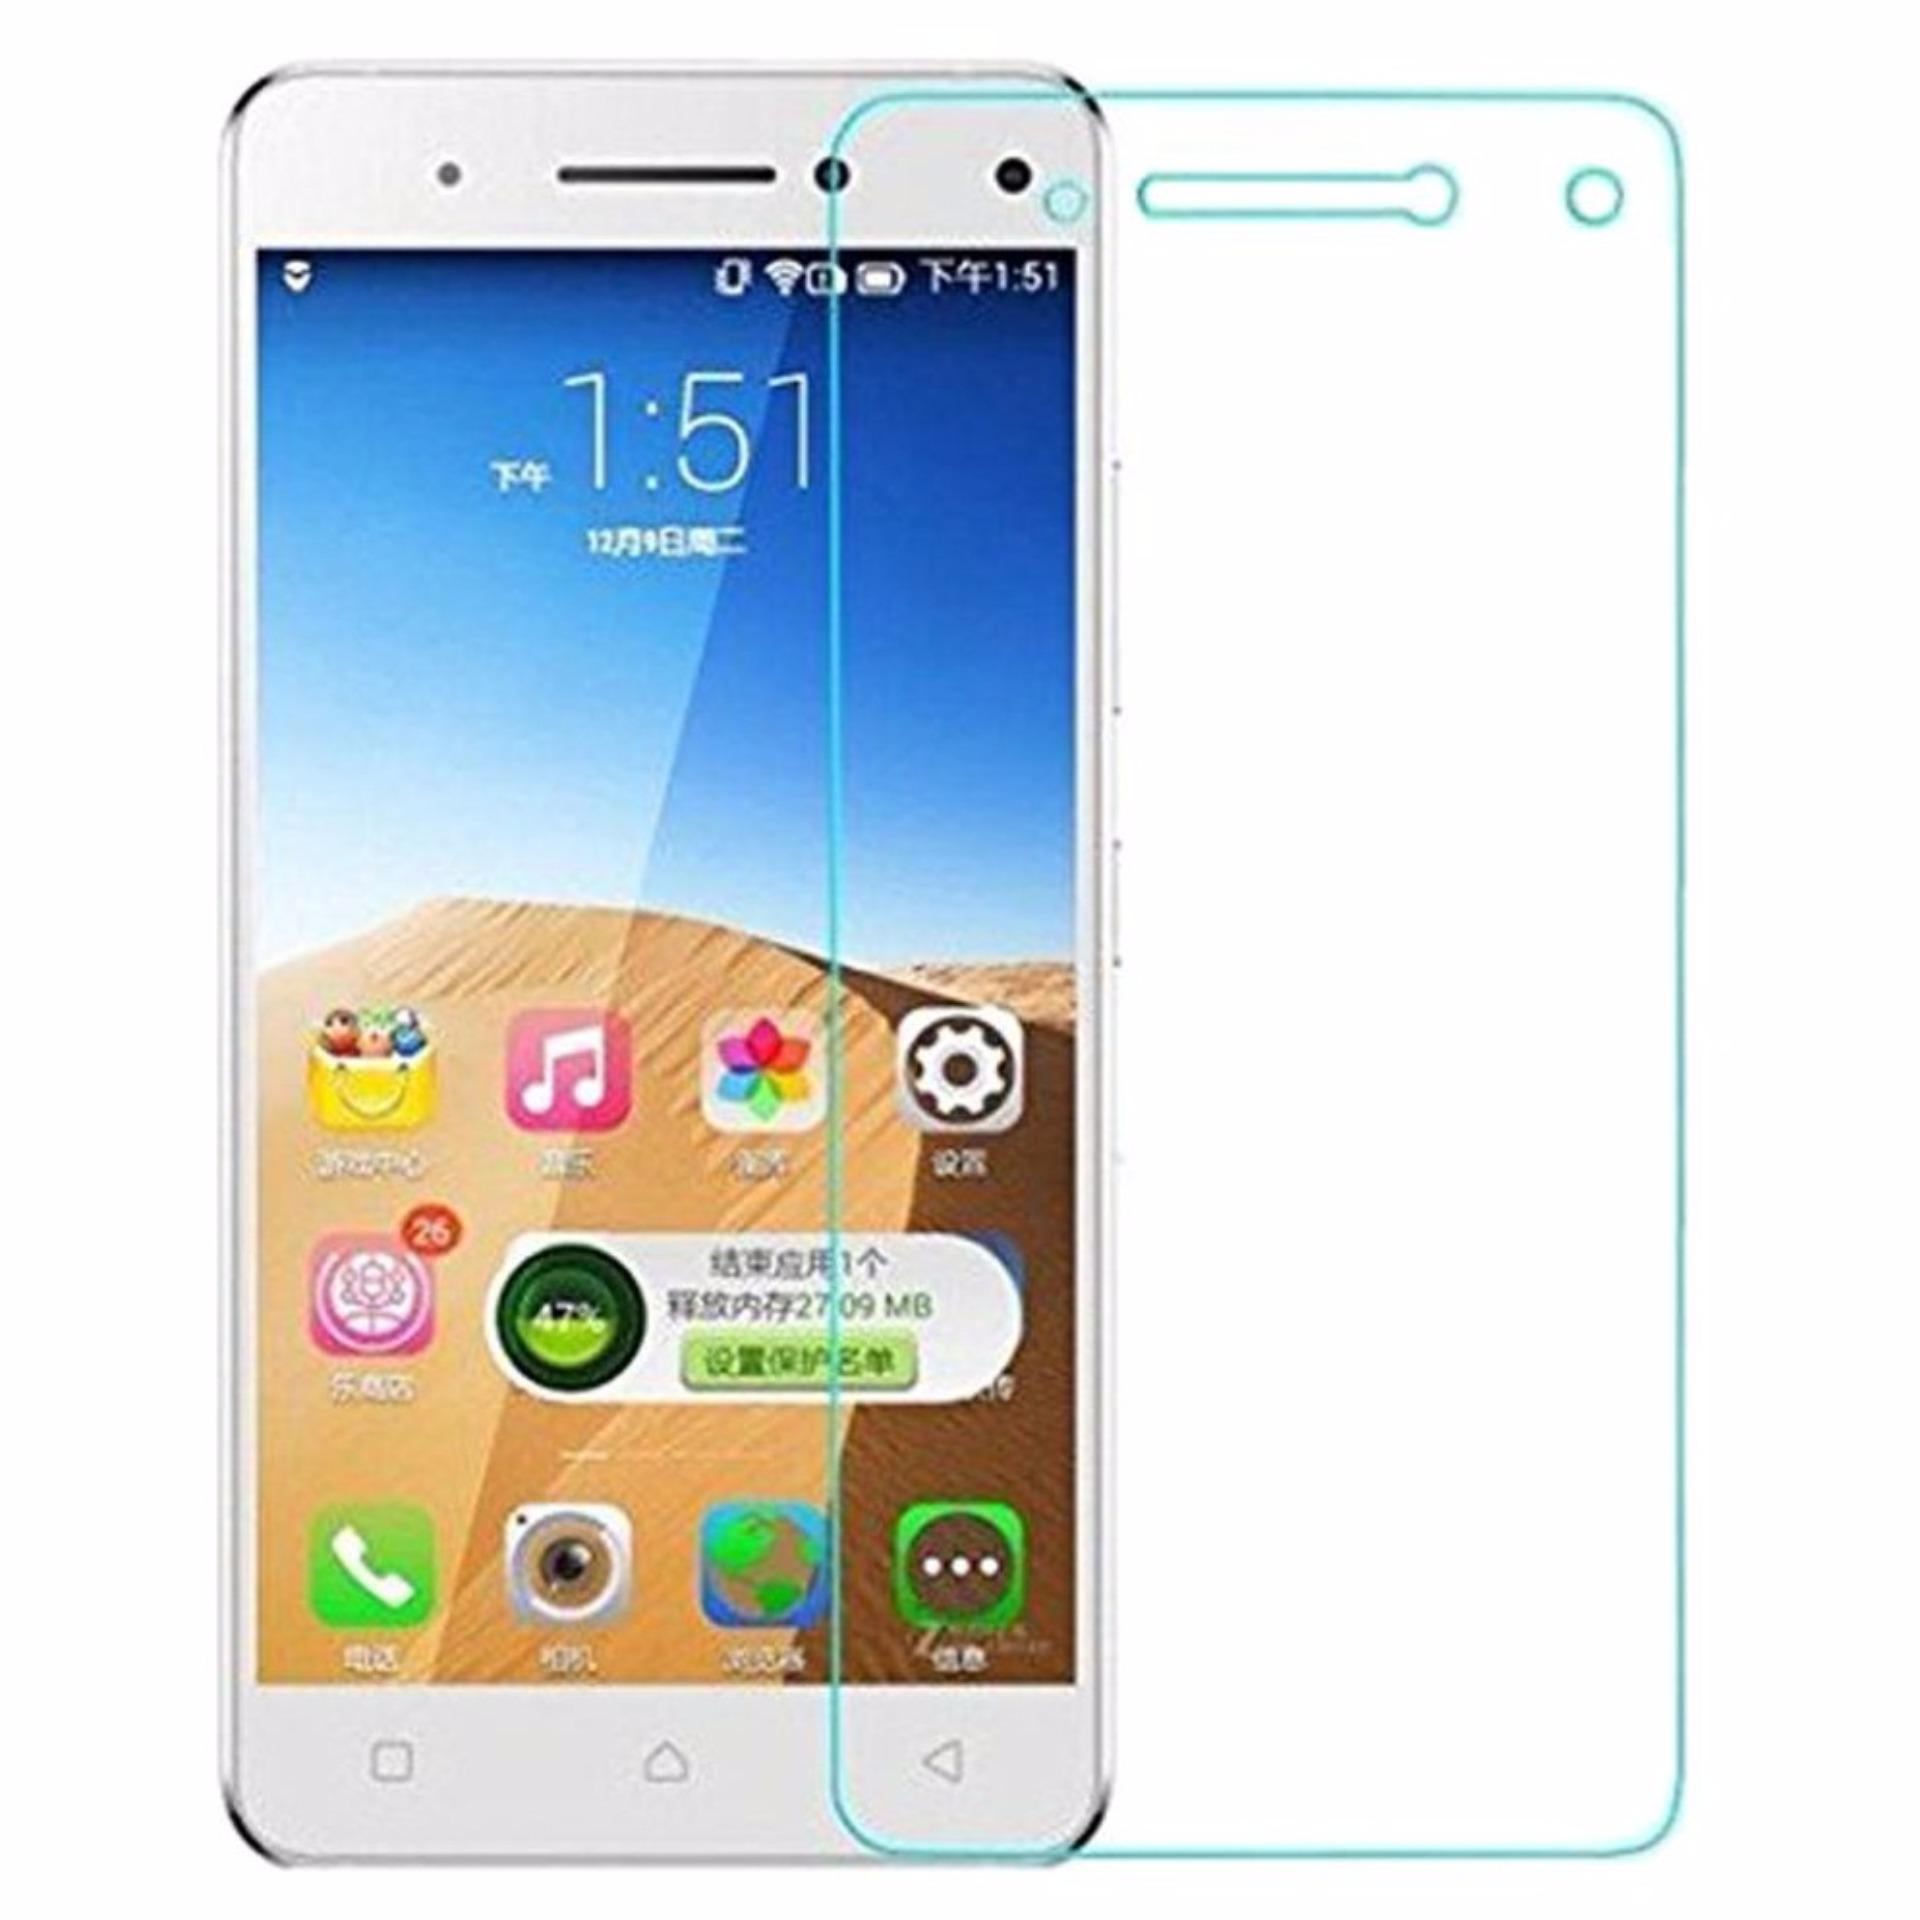 Vn Lenovo Vibe S1 Tempered Glass Screen Protector 0.32mm - Anti Crash Film - Bening